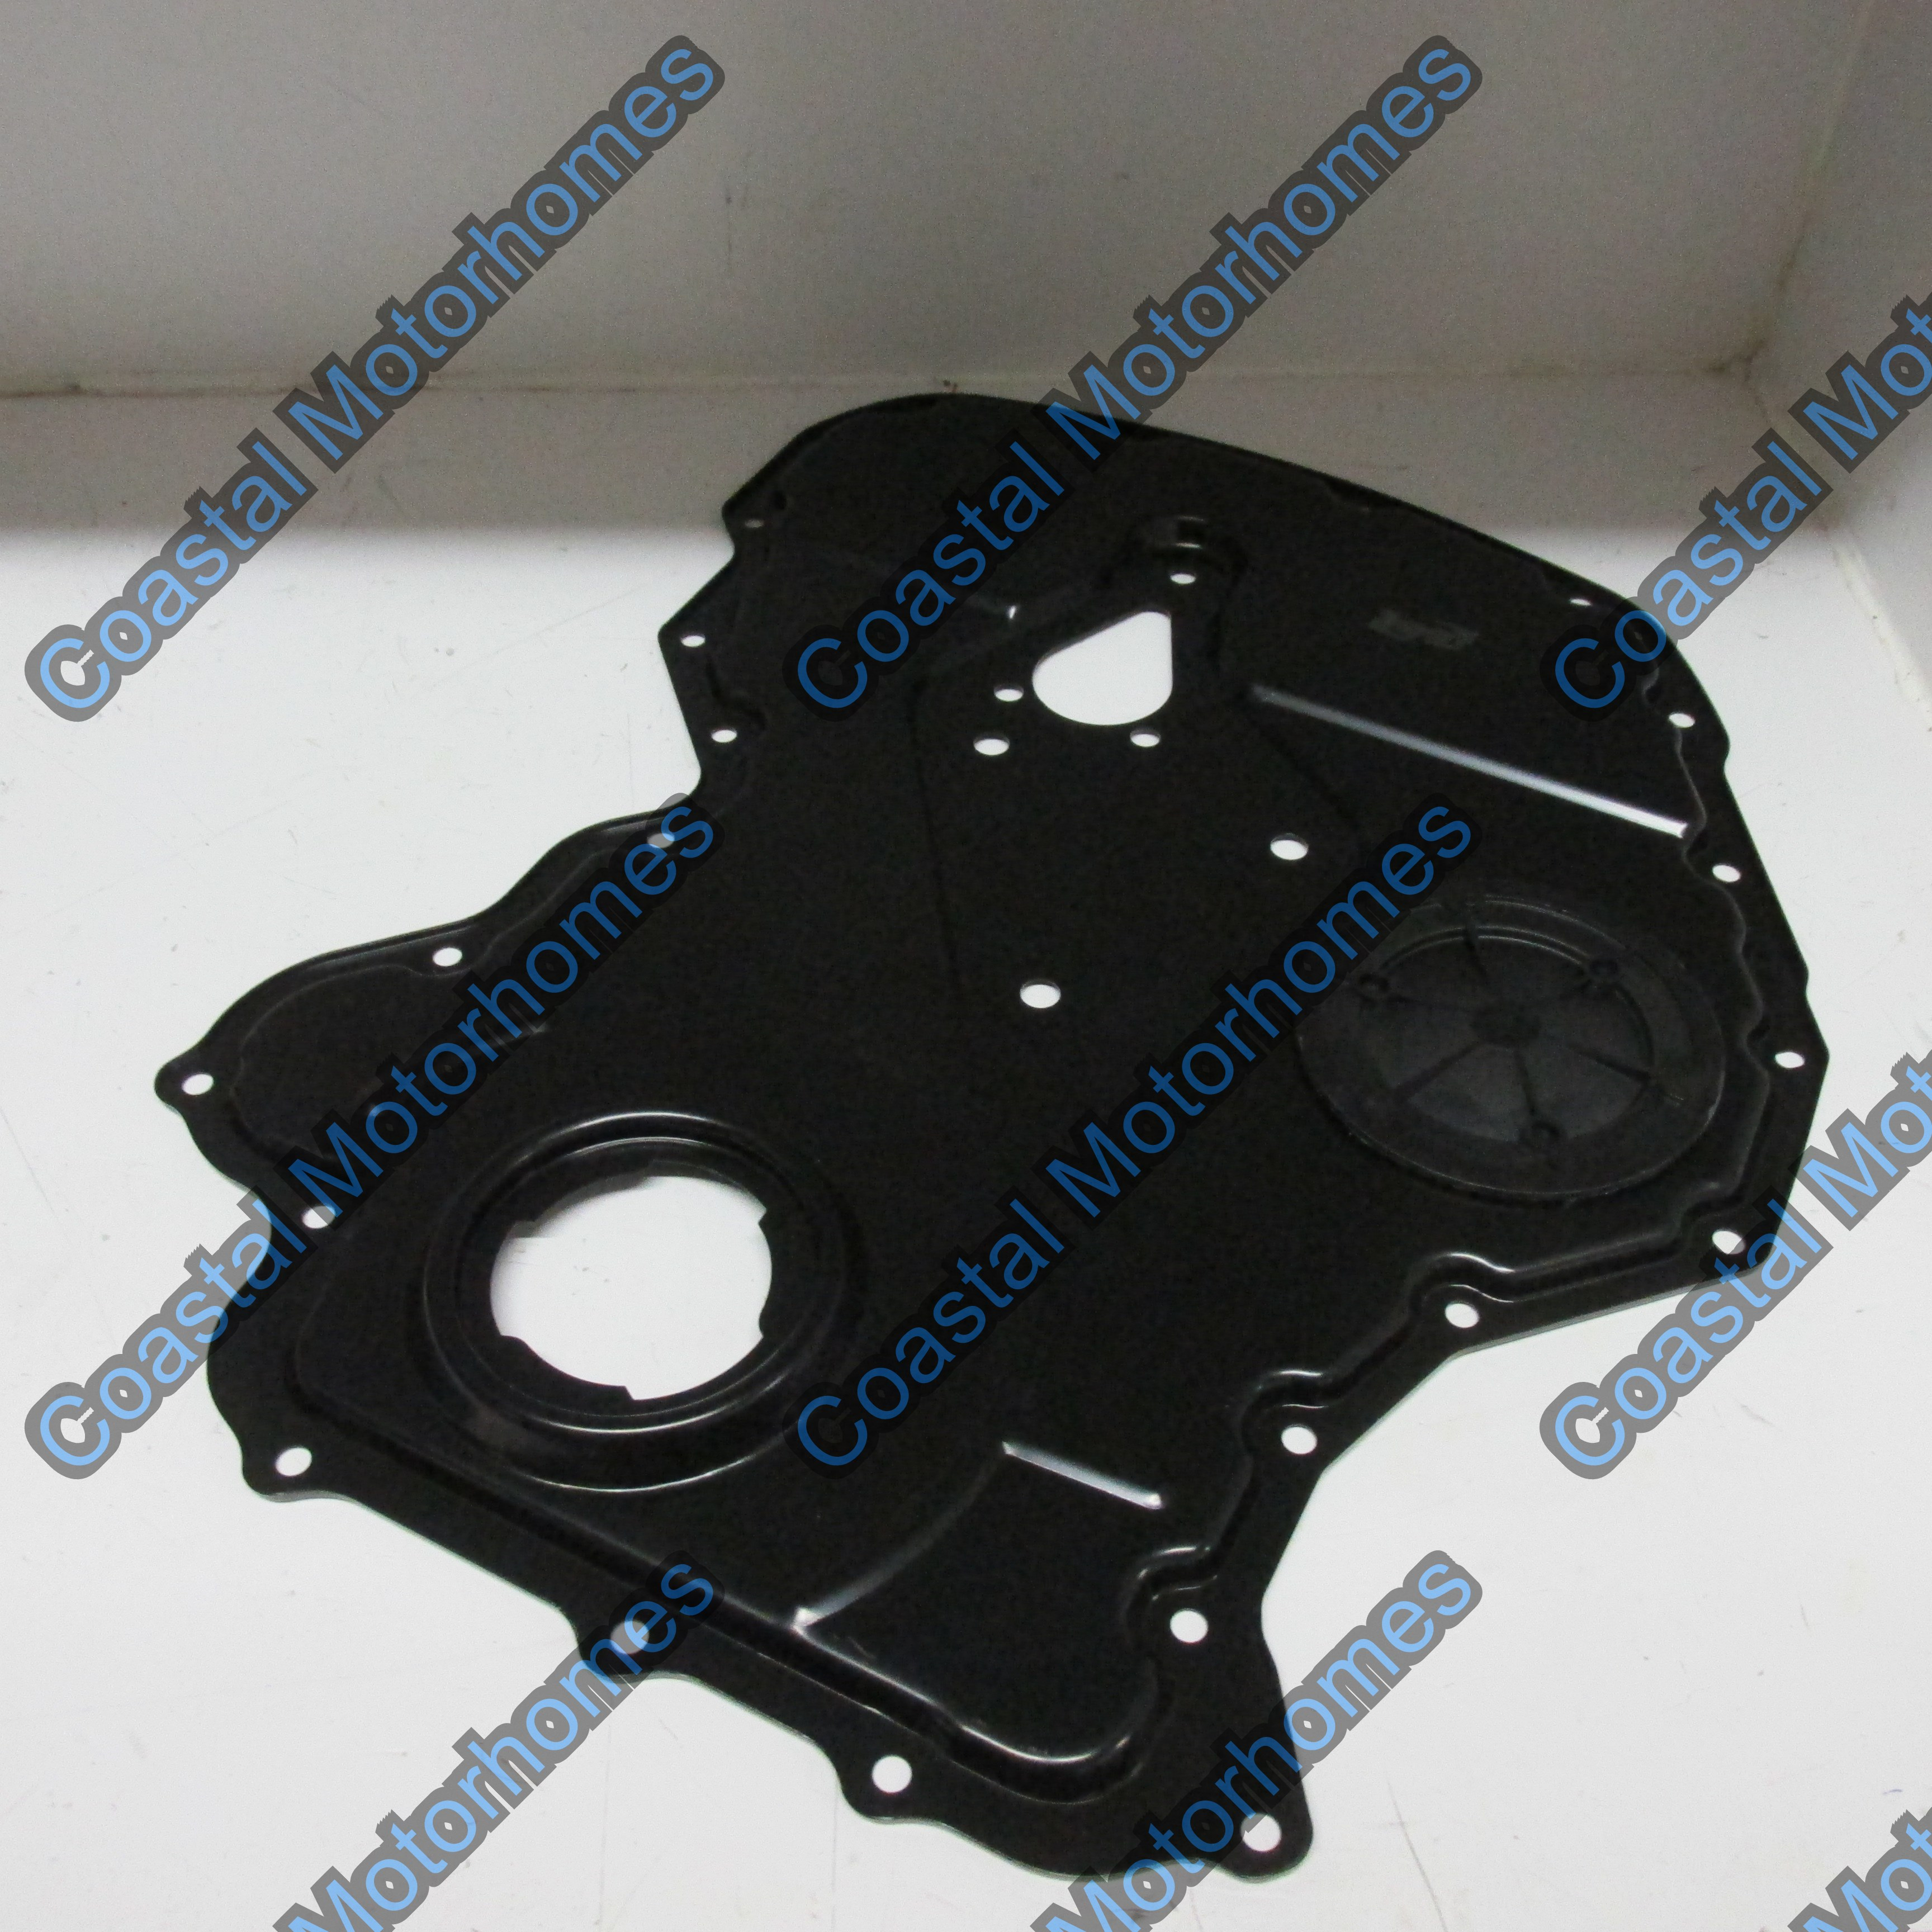 Land Rover Oem 03 05 Range Rover Engine Timing Chain: Ford Transit Mk6 2.4 Diesel Steel Timing Chain Cover 00-06